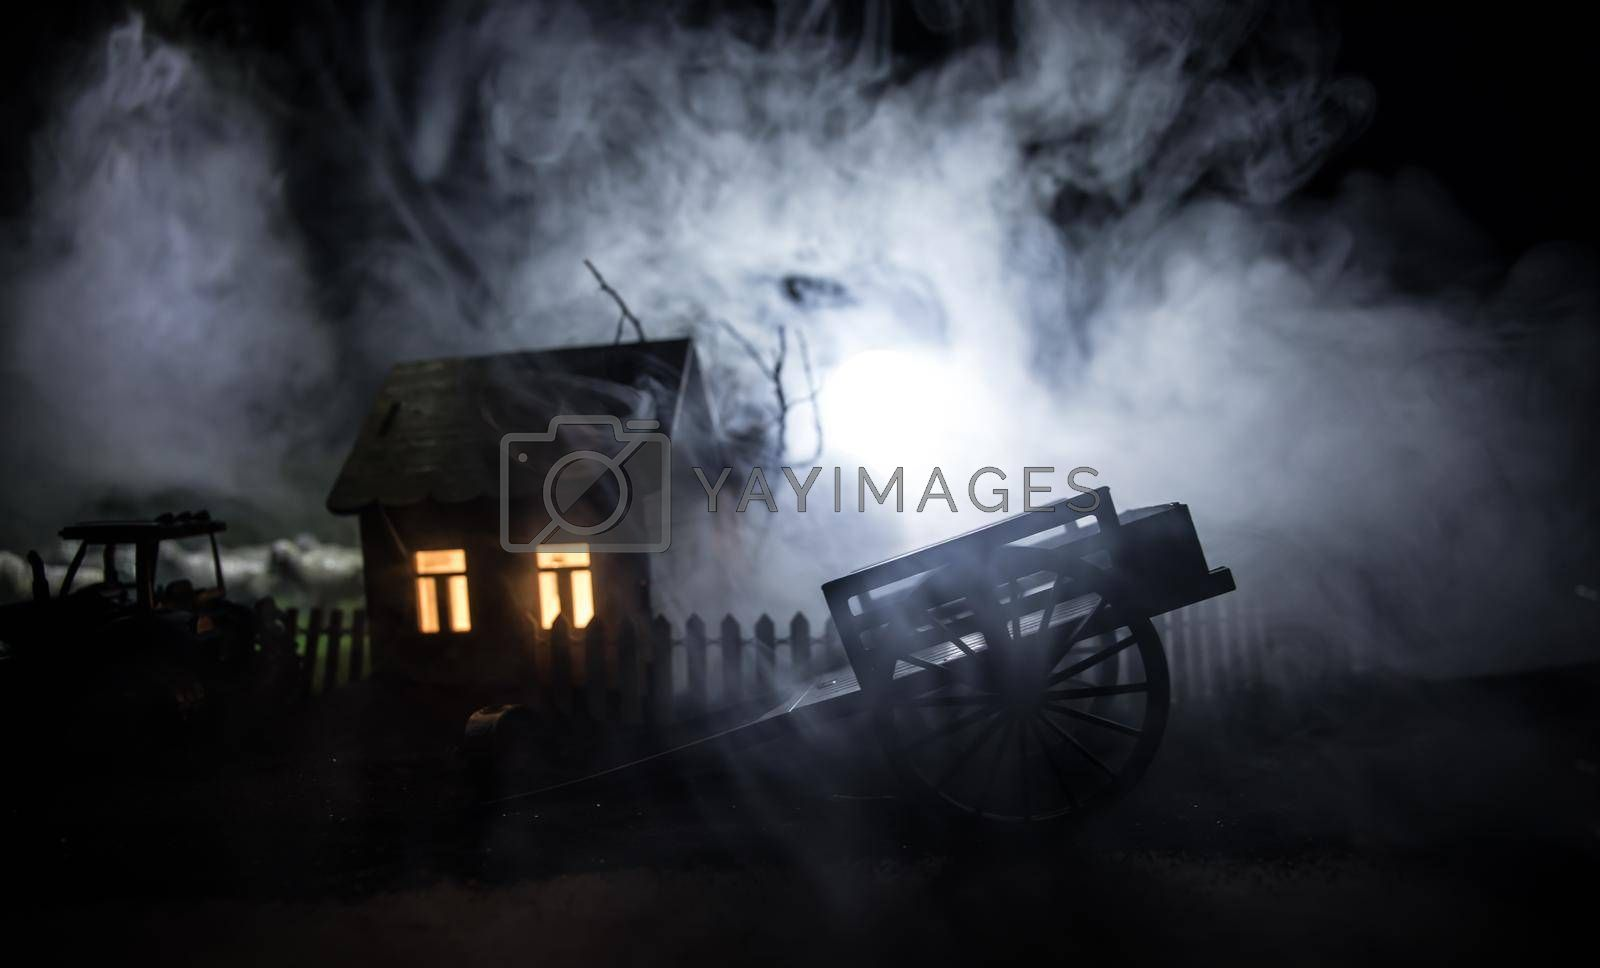 Full moon over quiet village at night. Decorative toy carriage at house with giant green grass under the moonlight. Selective focus